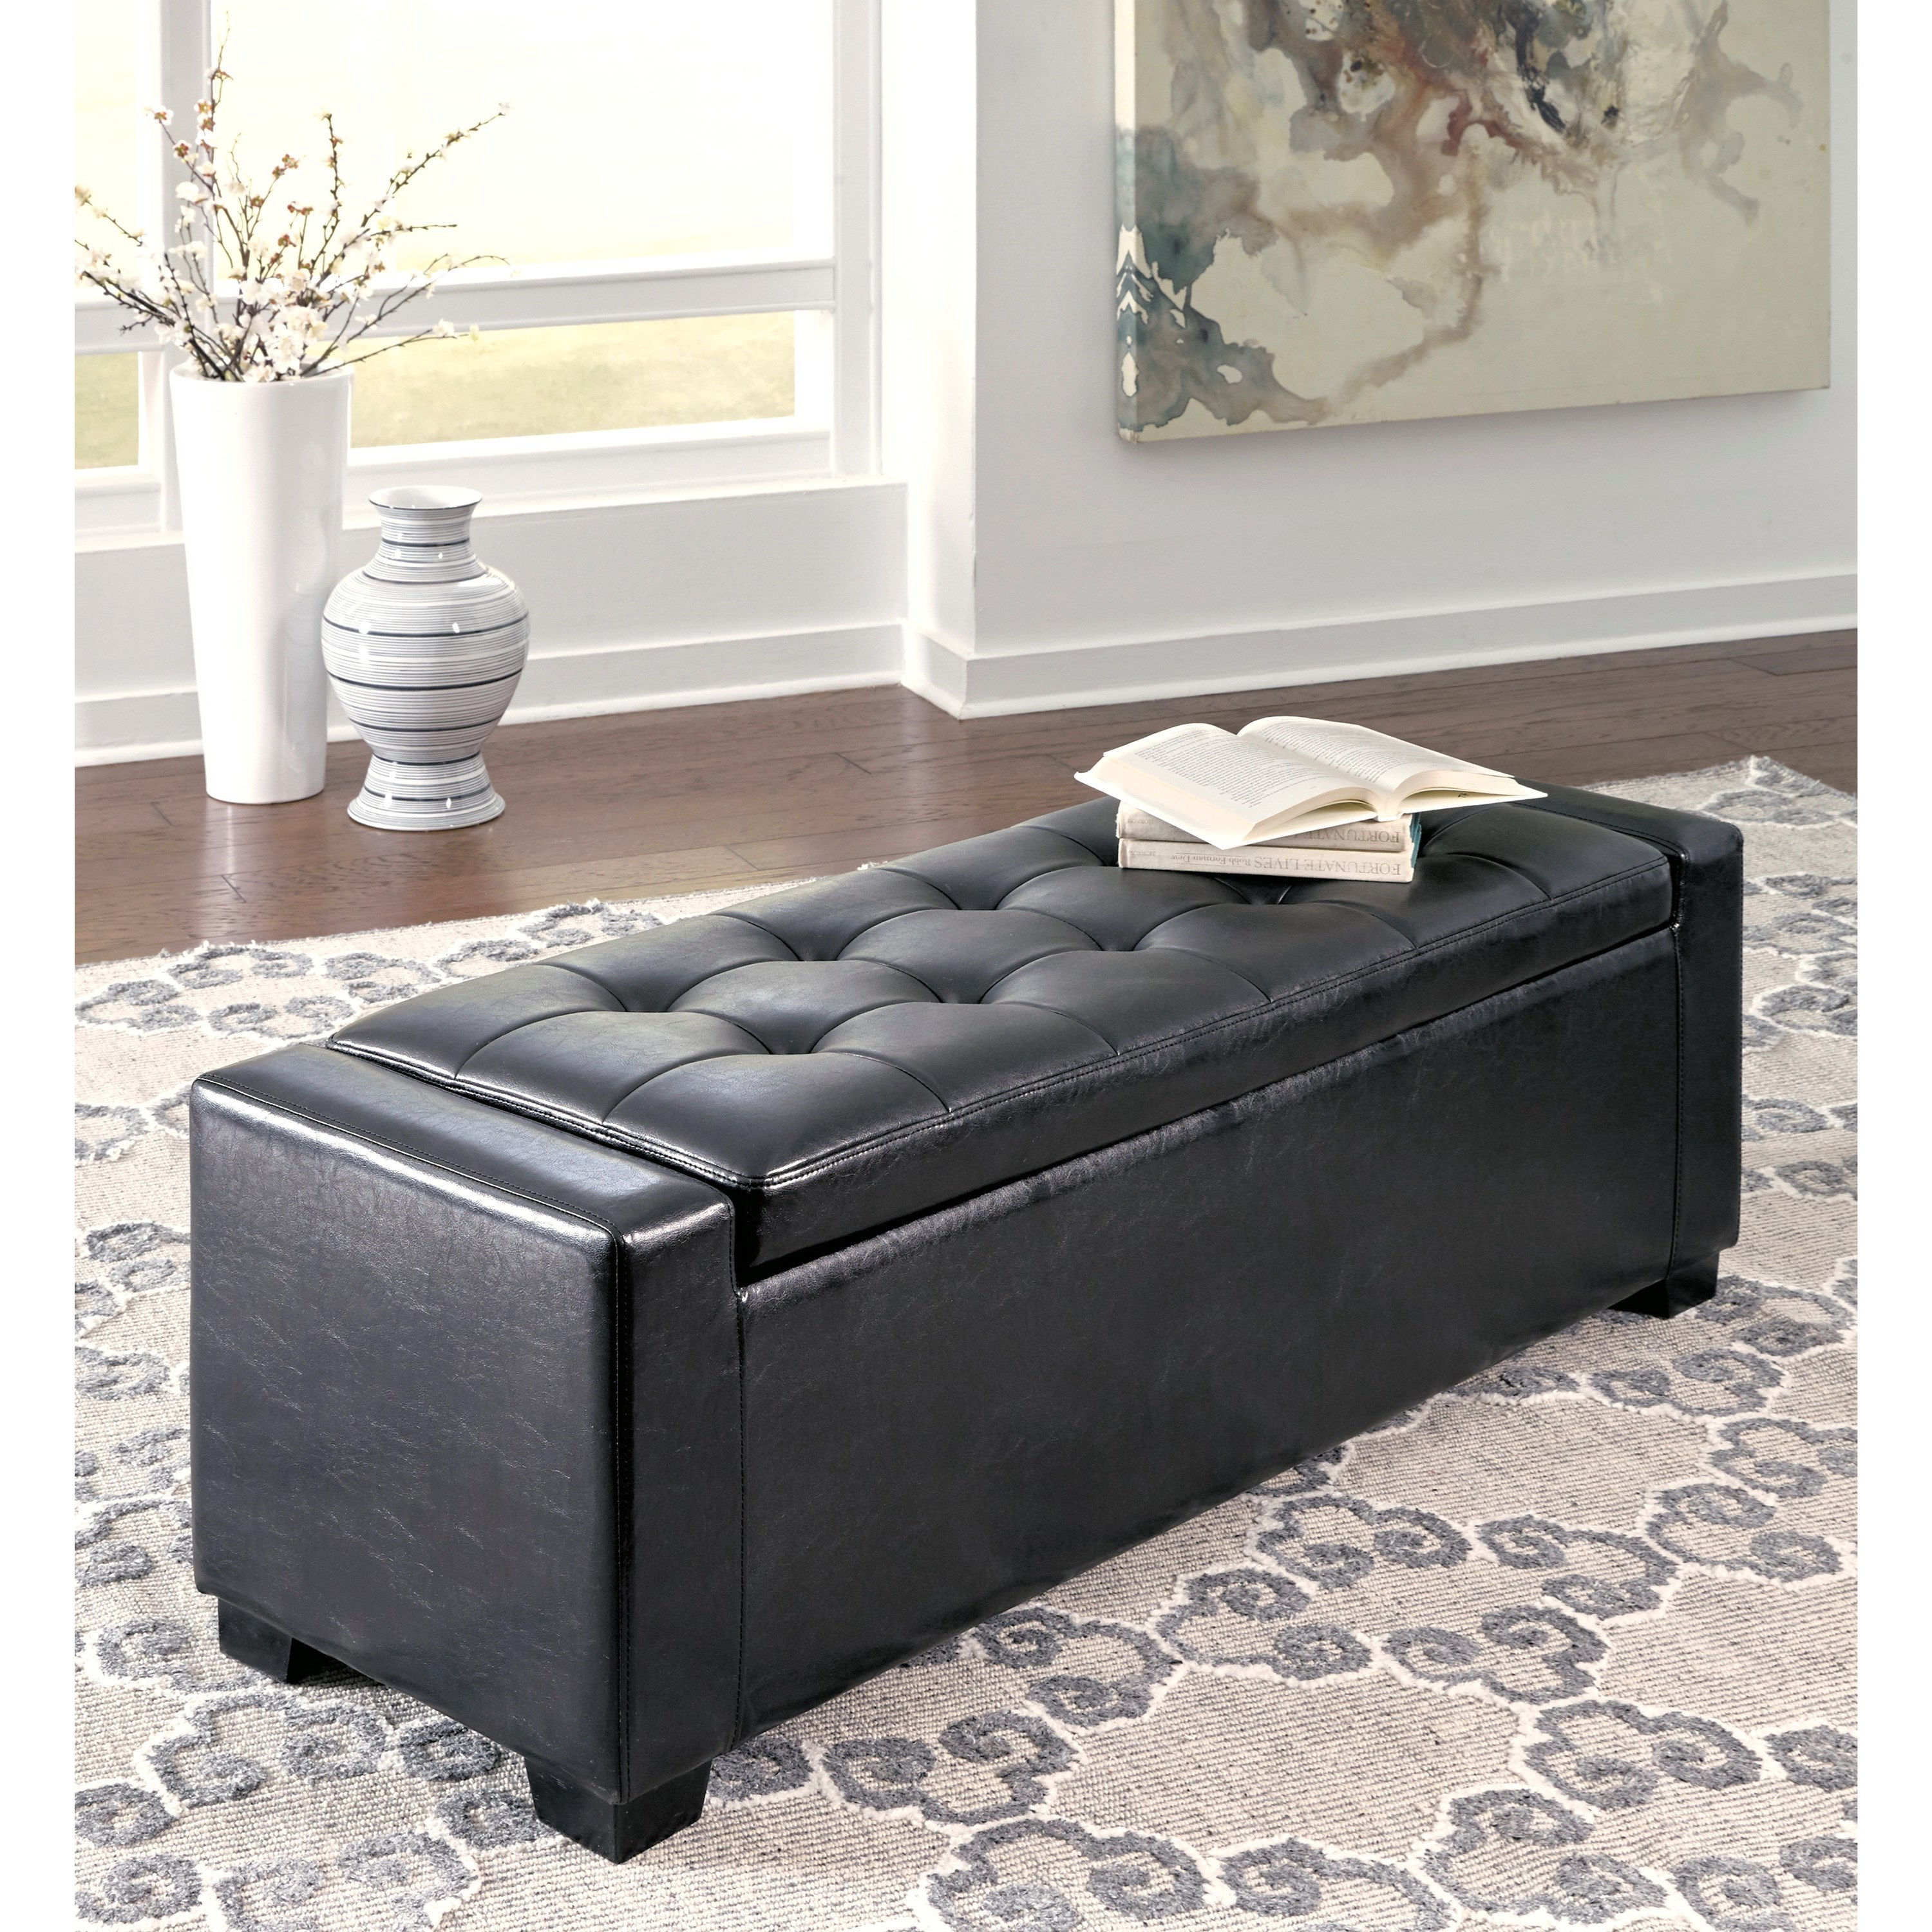 Signature Design By Ashley Benches B010-209 Upholstered